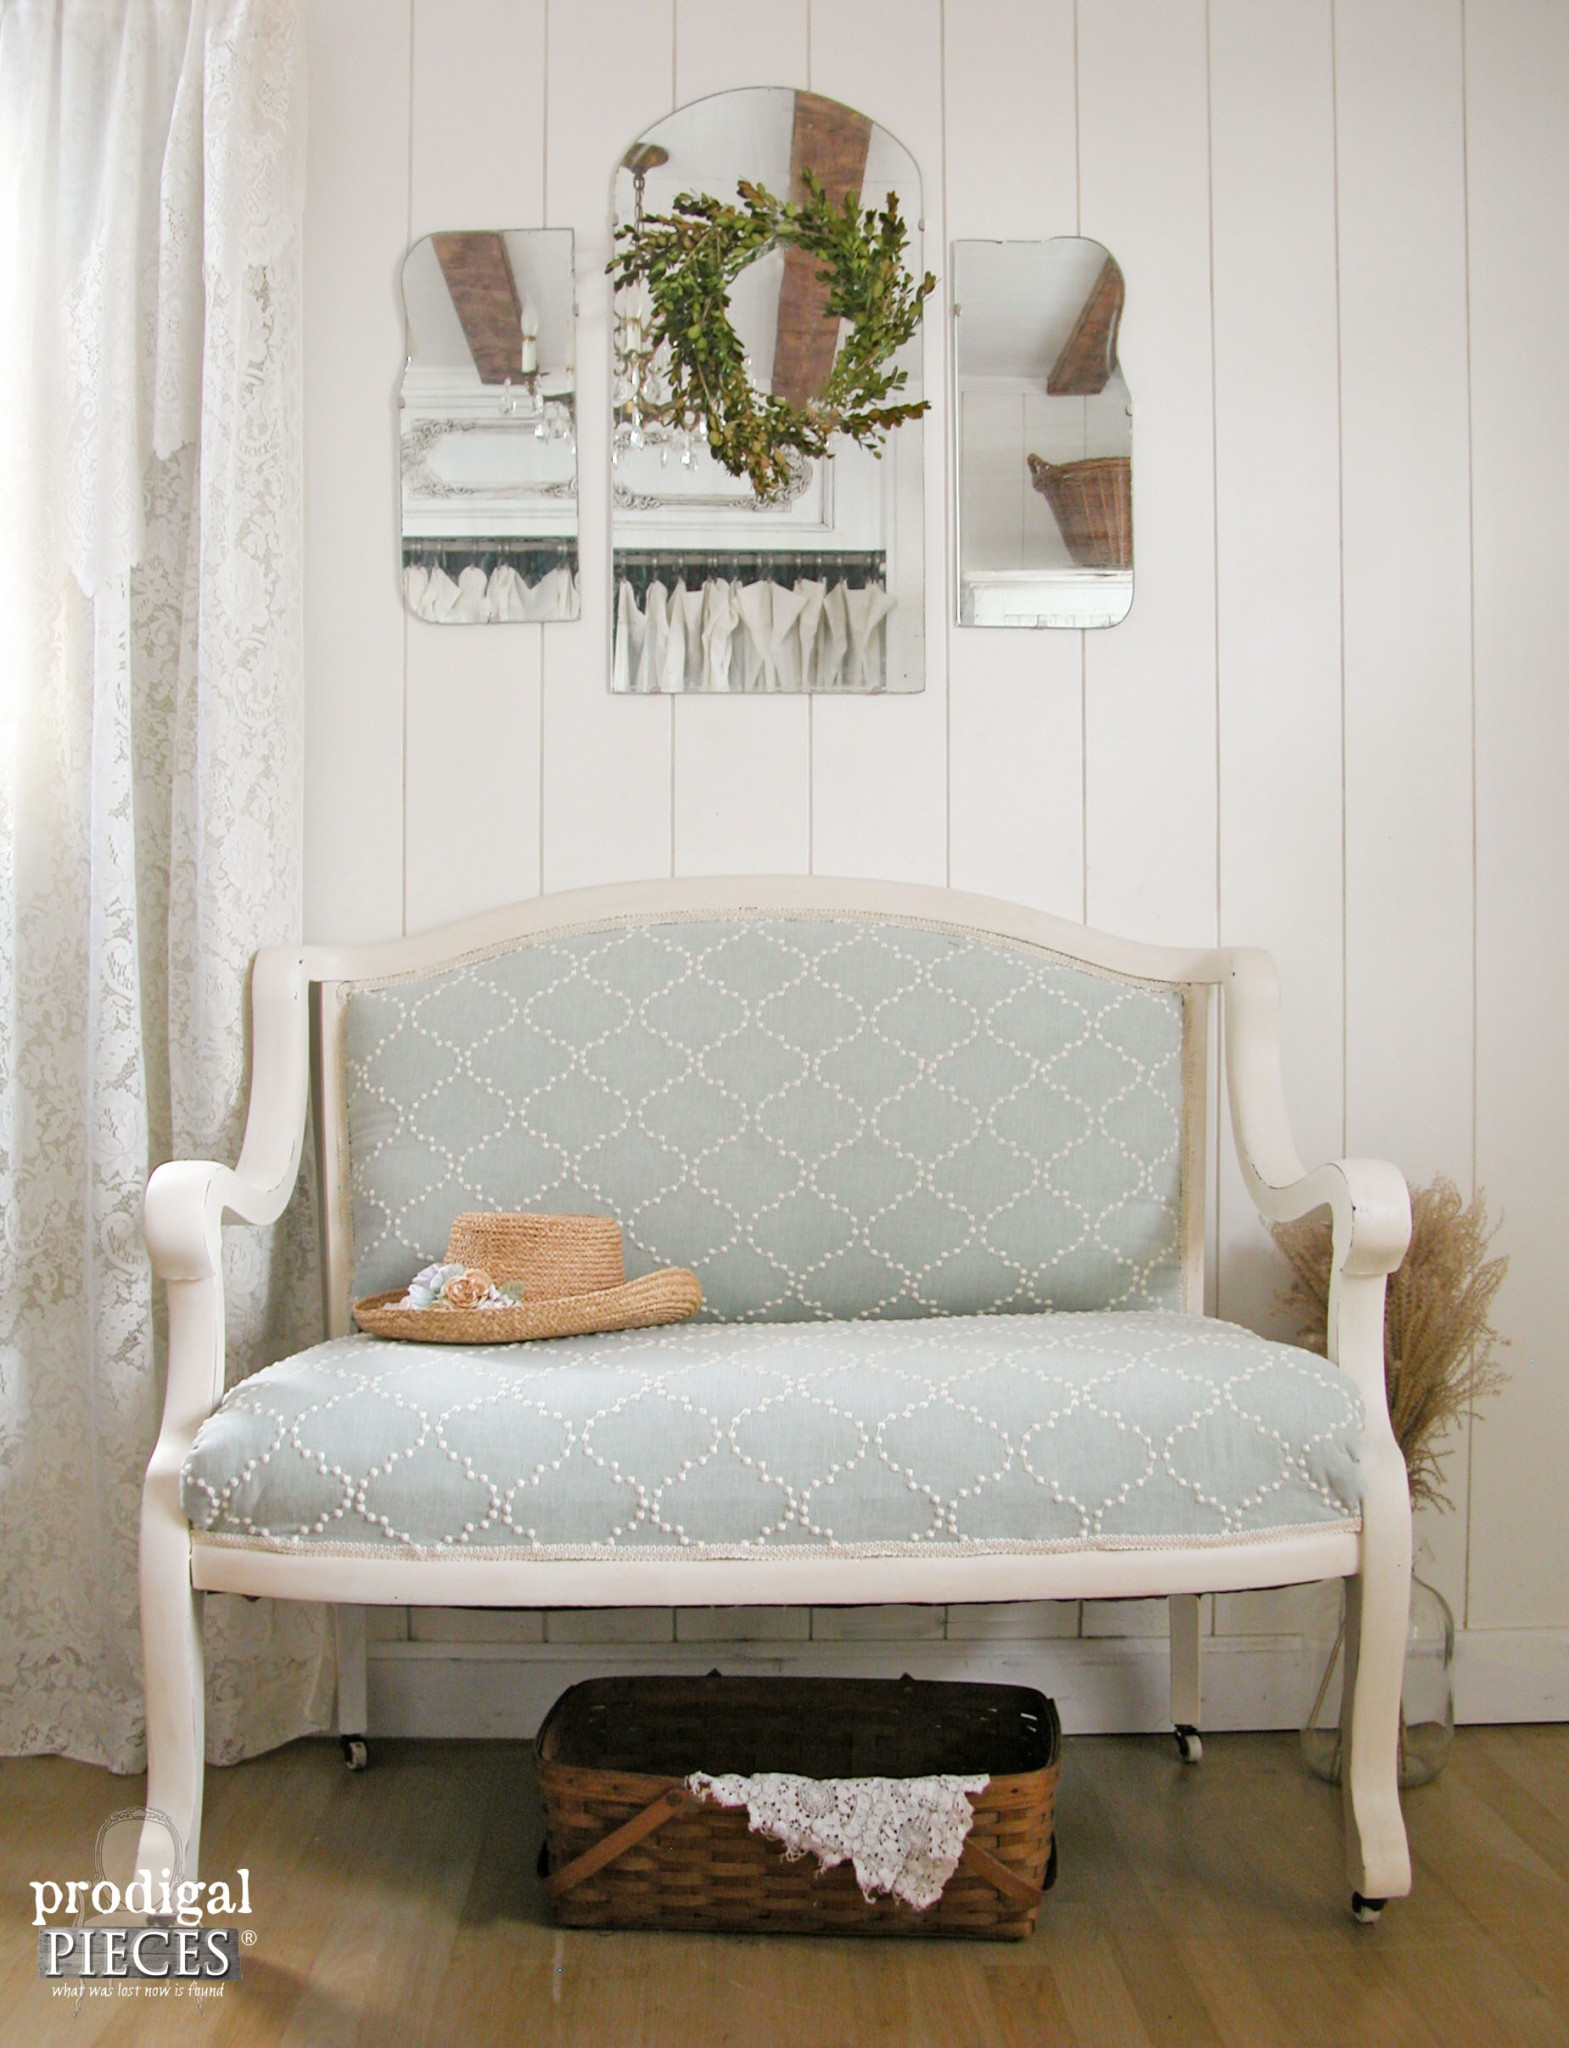 Curbside Antique Settee Makeover | Prodigal Pieces | www.prodigalpieces.com